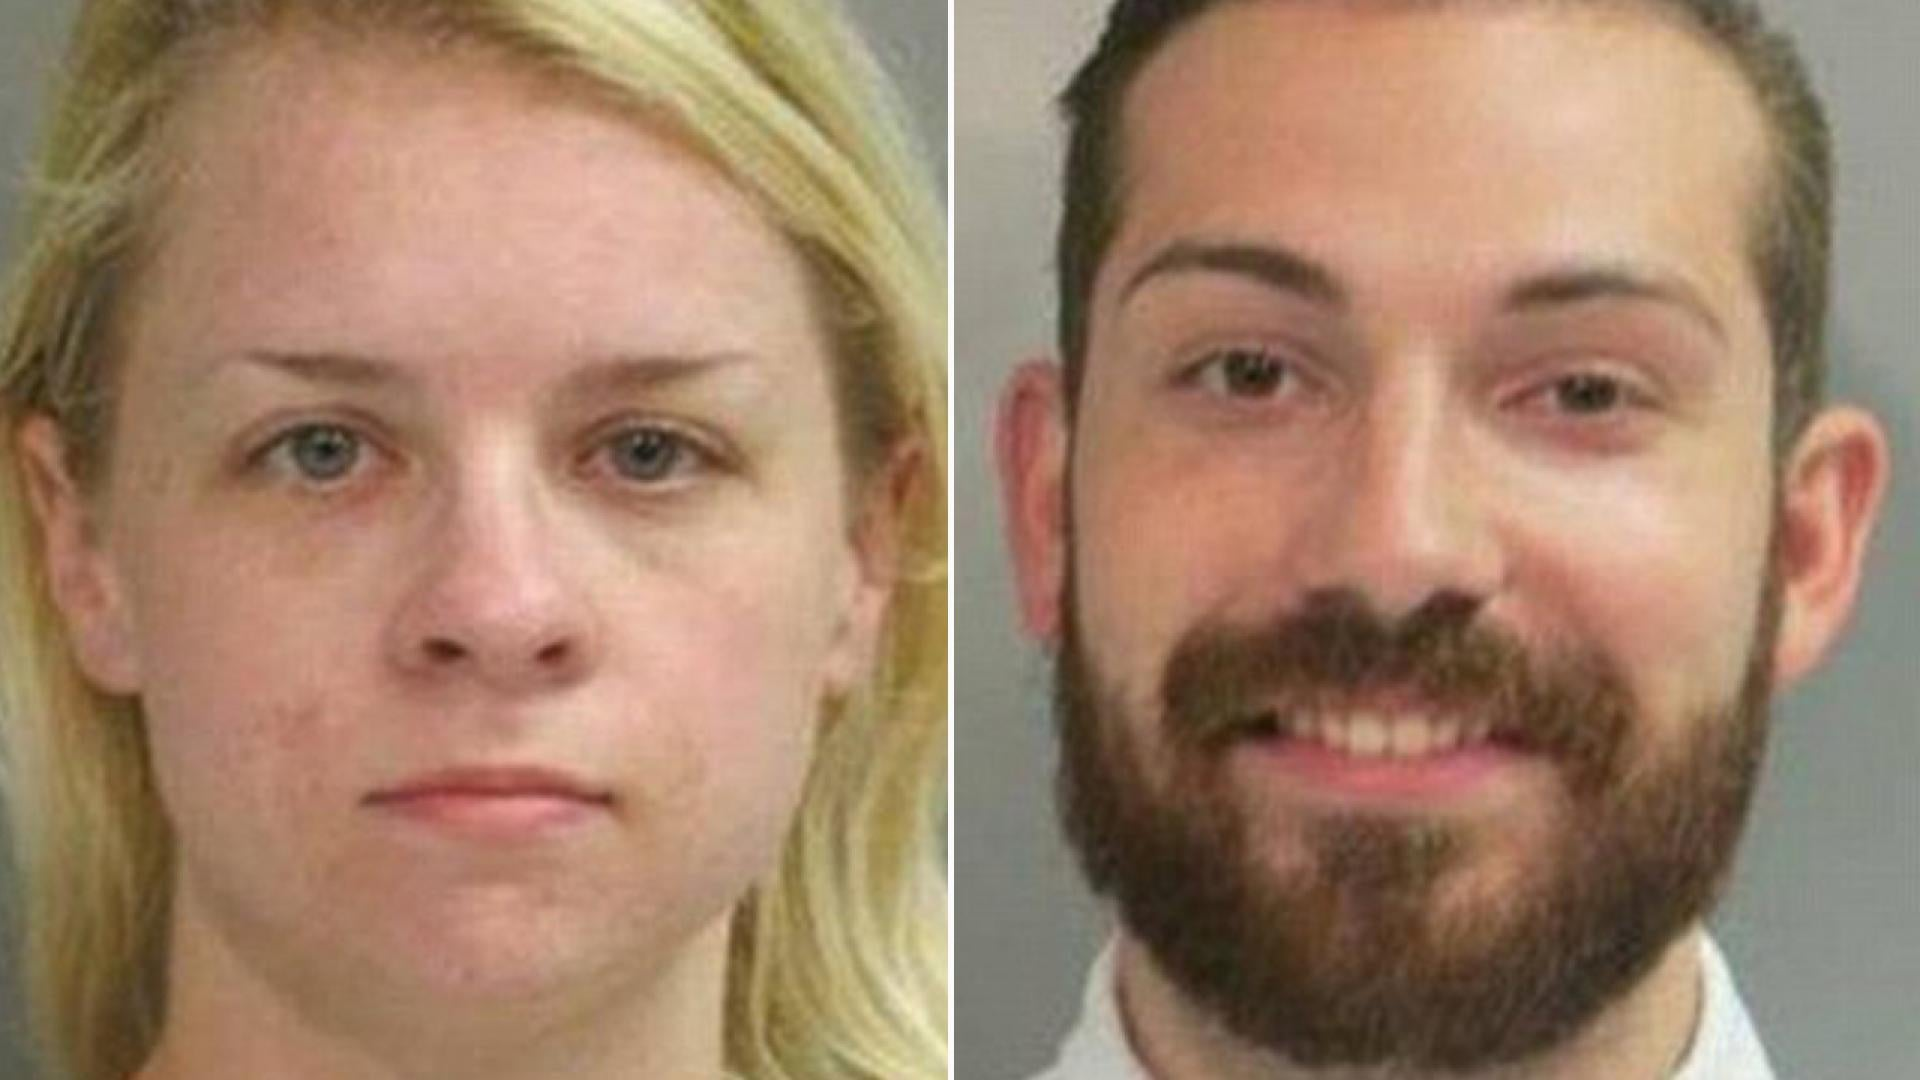 Maxine Feldstein, 30, pleaded guilty Monday to forgery, being an accomplice to escape and criminal impersonation in the second degree after helping her boyfriend Nicholas Lowe escape the Washington County Detention Center in July 2018.